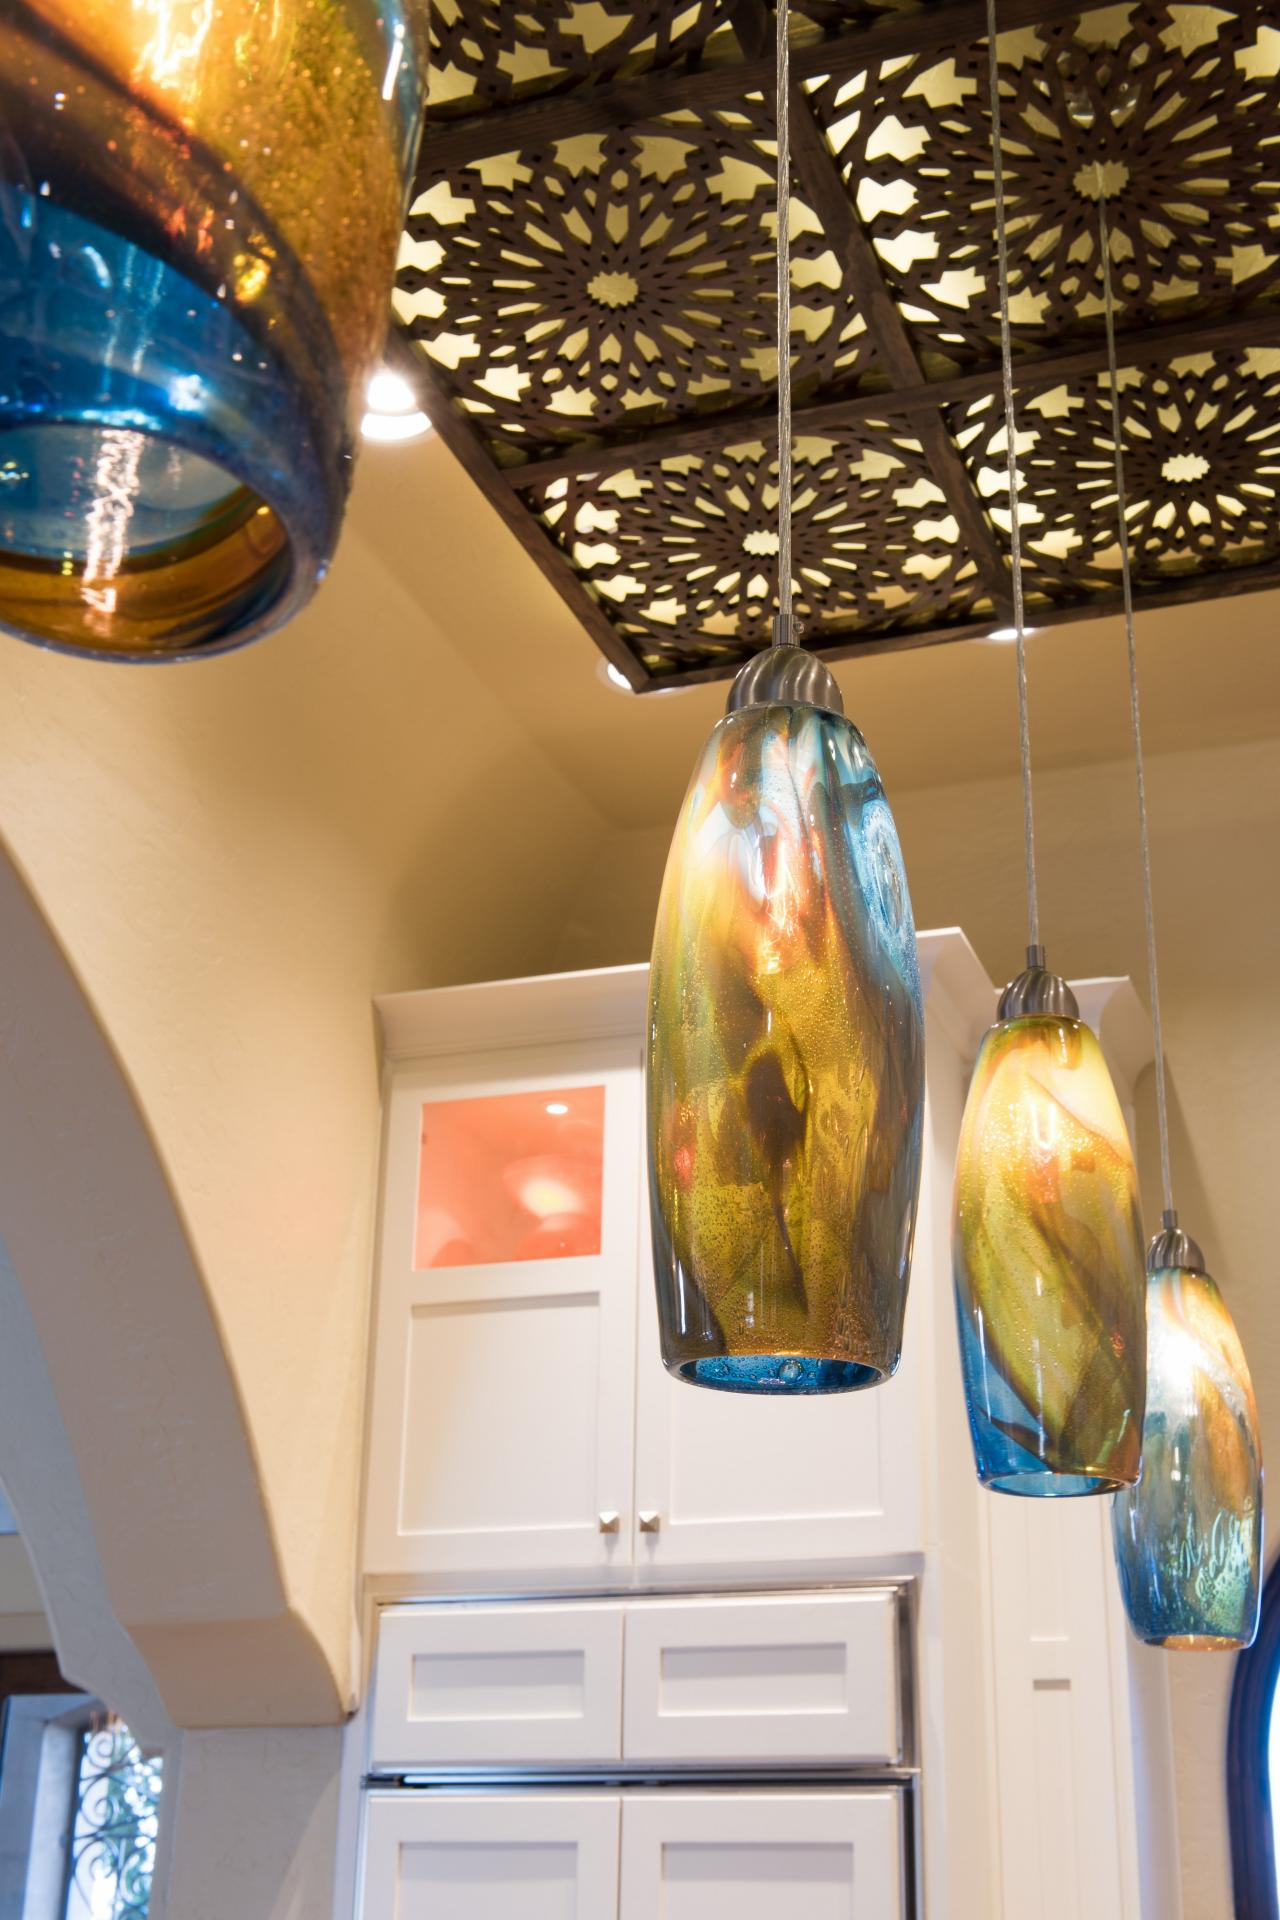 Ceiling can be decorated with decorative ceiling light panels warisan lighting - Decorative light fixtures ...